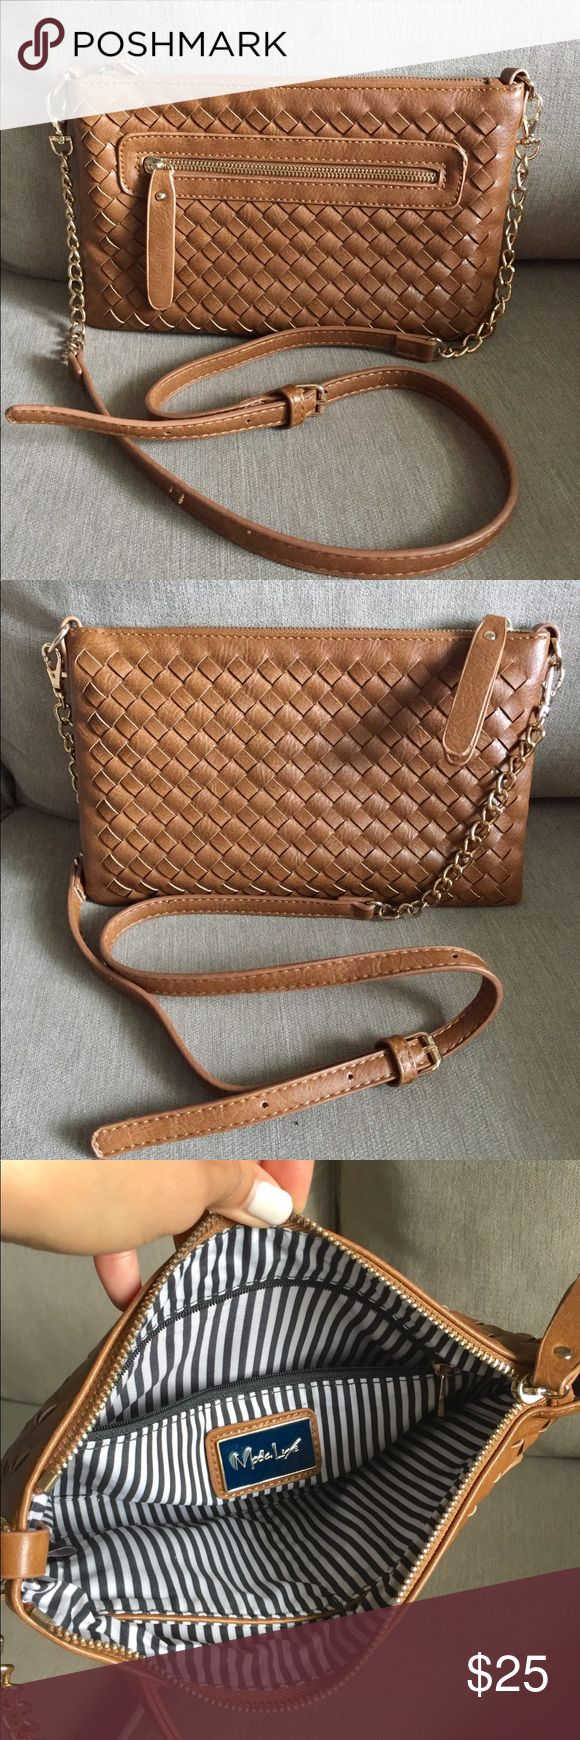 Moda Luxe Camel Clutch Crossbody Moda Luxe camel Clutch Crossbody. Excellent used condition.  Has detachable Crossbody strap. Zipper closure so nothing falls out! Main pocket has 2 side compartments for cell phone or other small items. 1 zippered pocket inside main compartment. Has 1 outer zippered pocket for easy access for other necessities! Bags Crossbody Bags